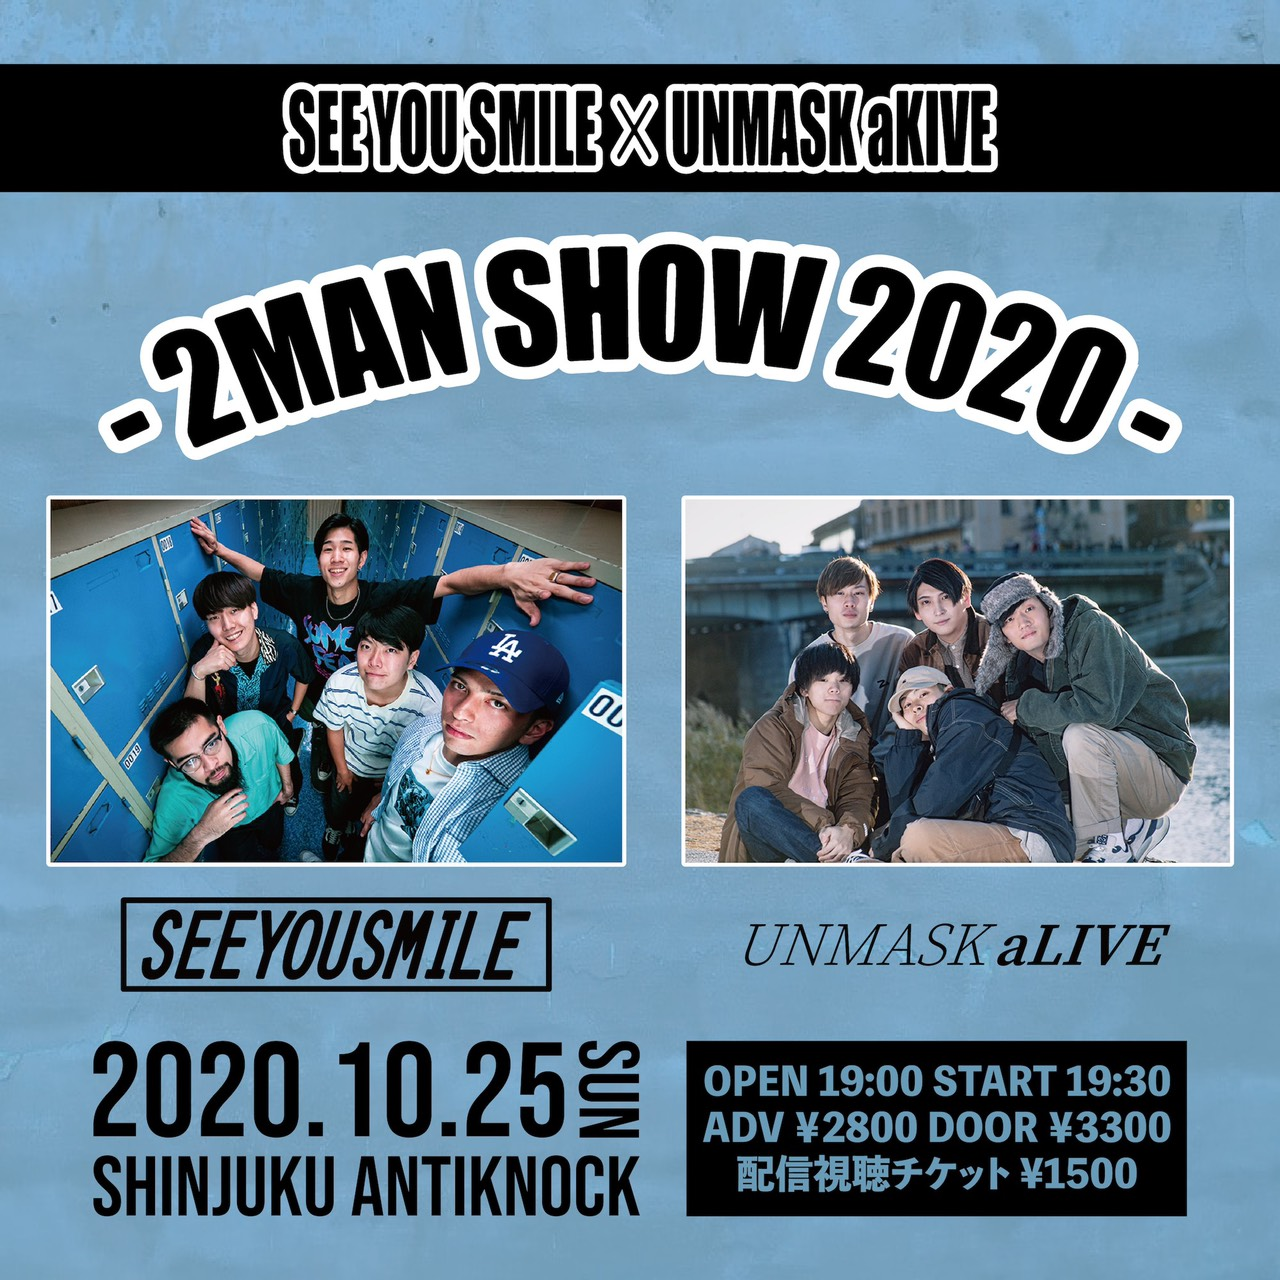 SEE YOU SMILE×UNMASK aLIVE【2MAN SHOW 2020】